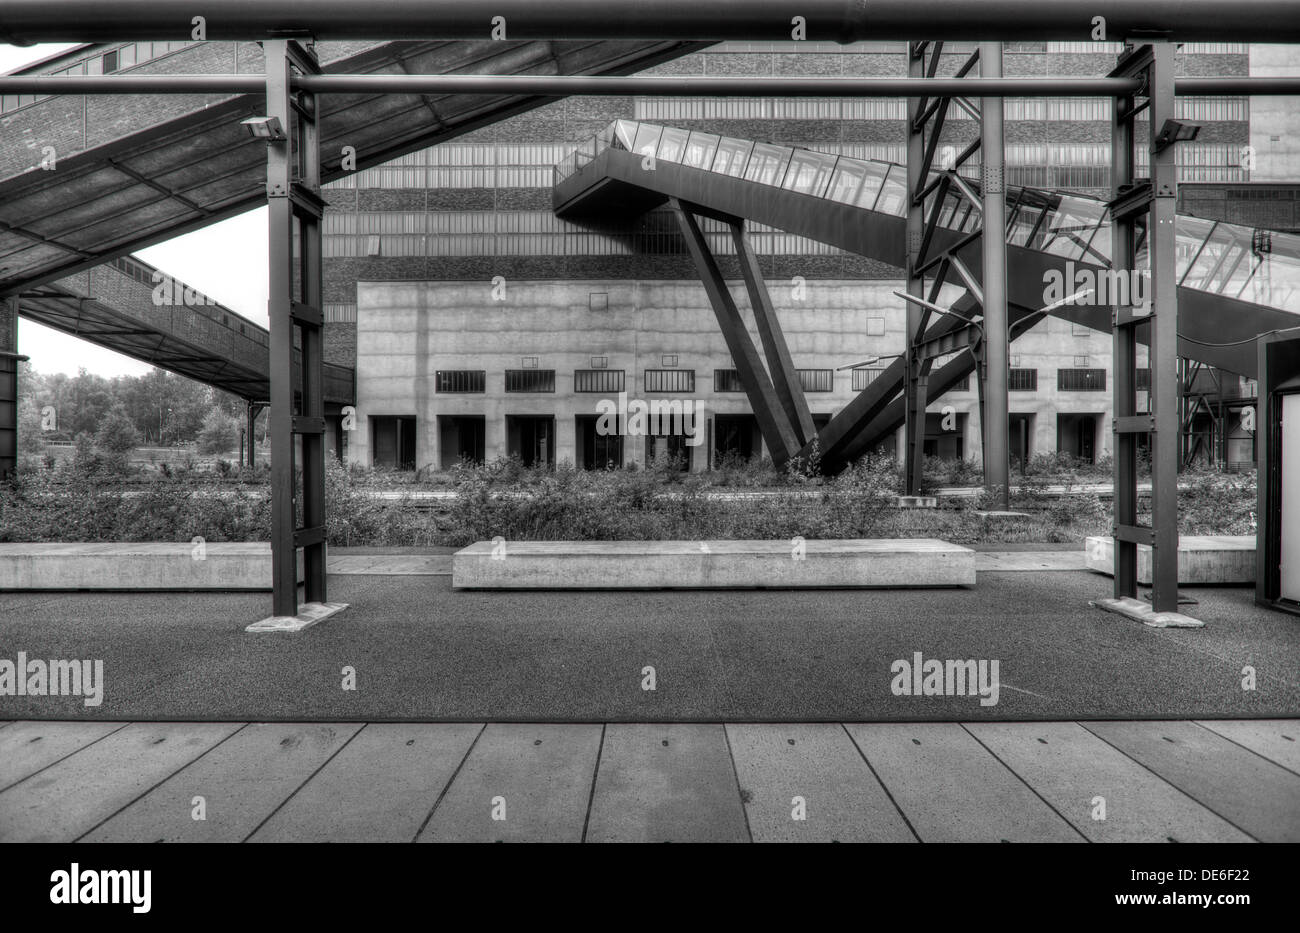 Industrial architecture in the Rhur region of Germany - Stock Image